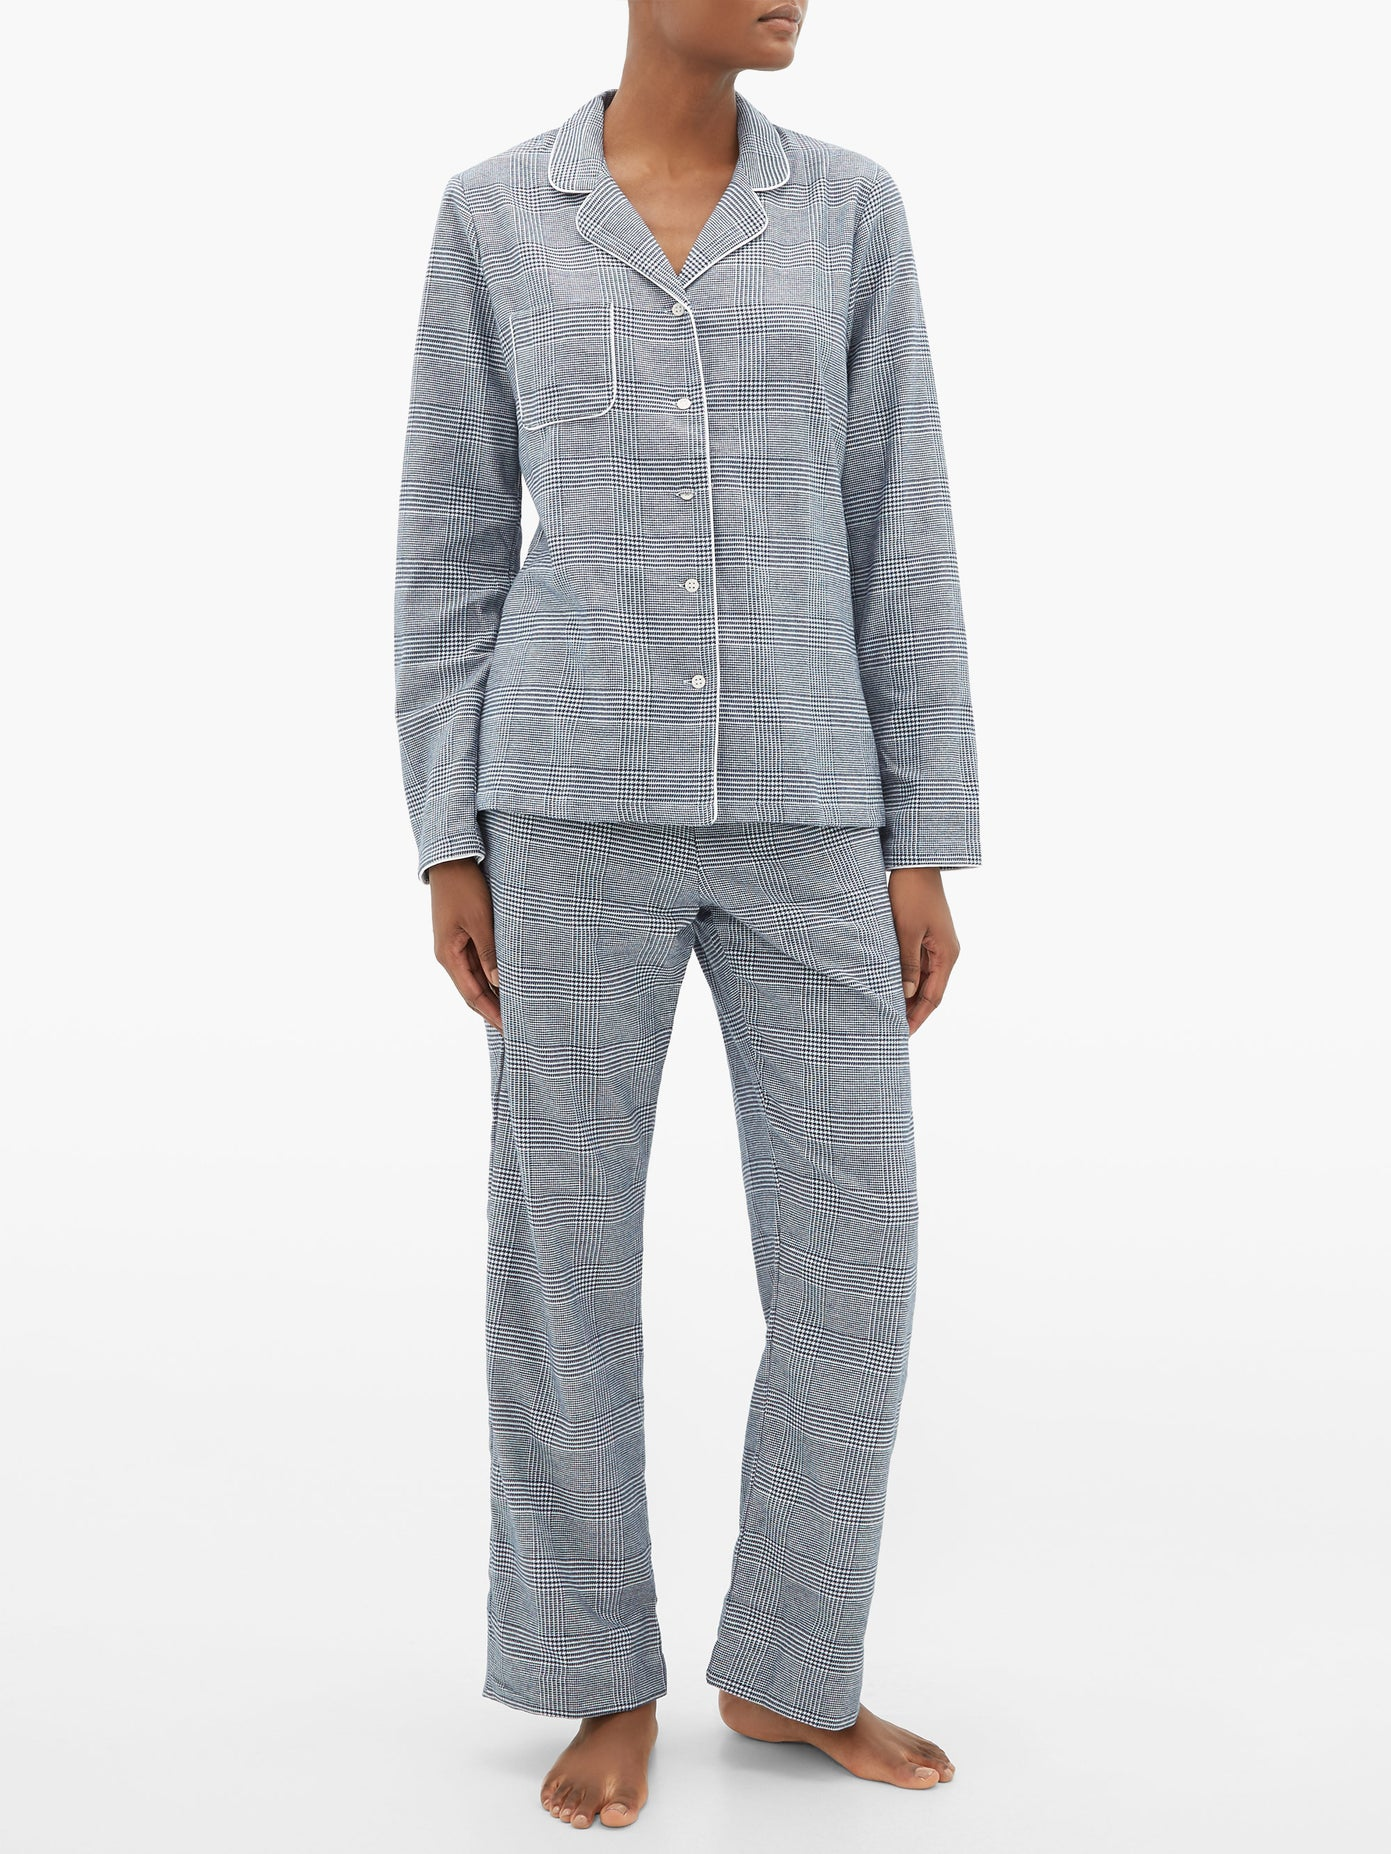 Derek Rose brushed cotton pajamas